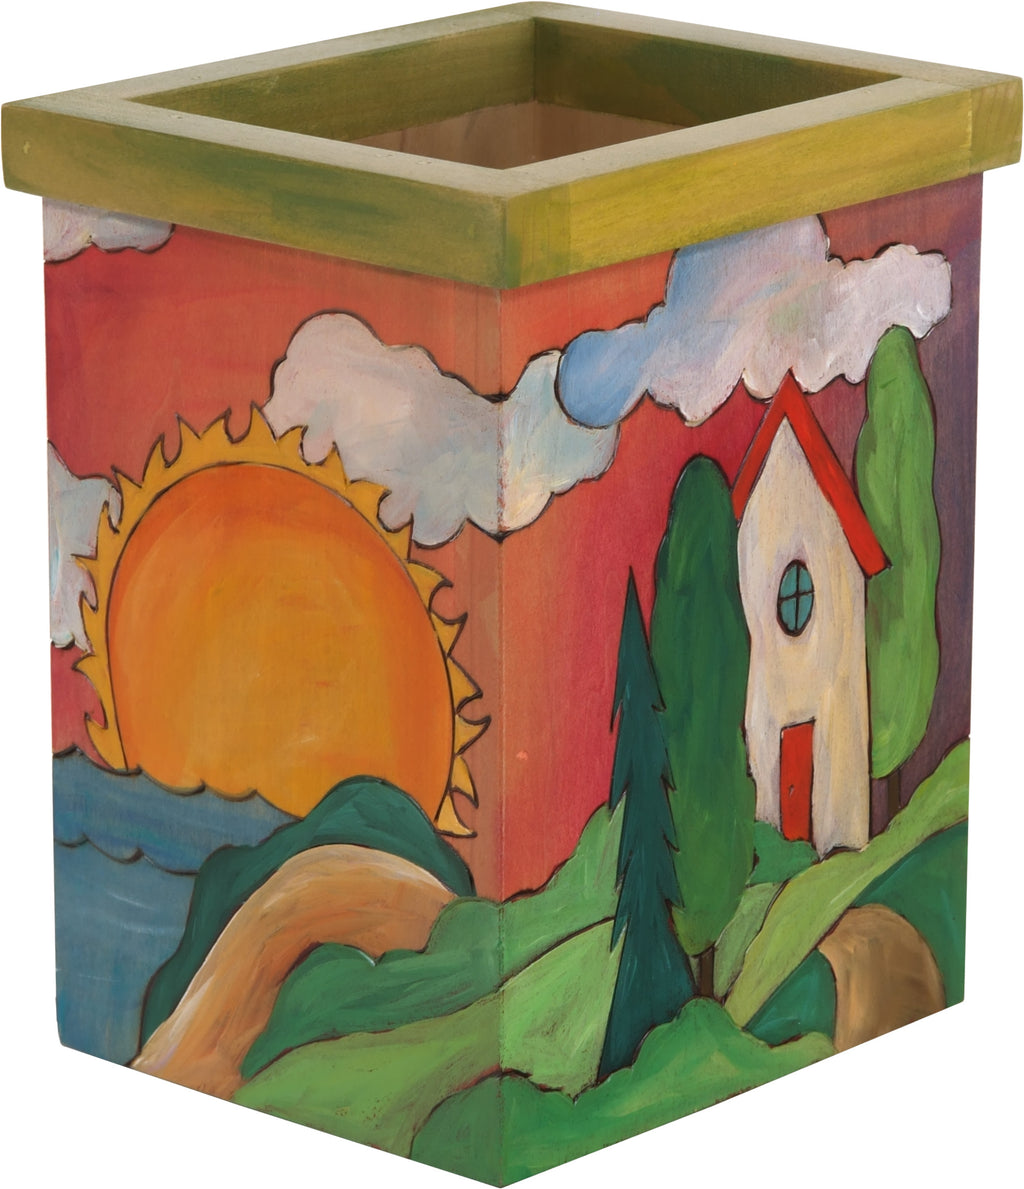 Vase/Utensil Box – Cute and colorful landscape box design